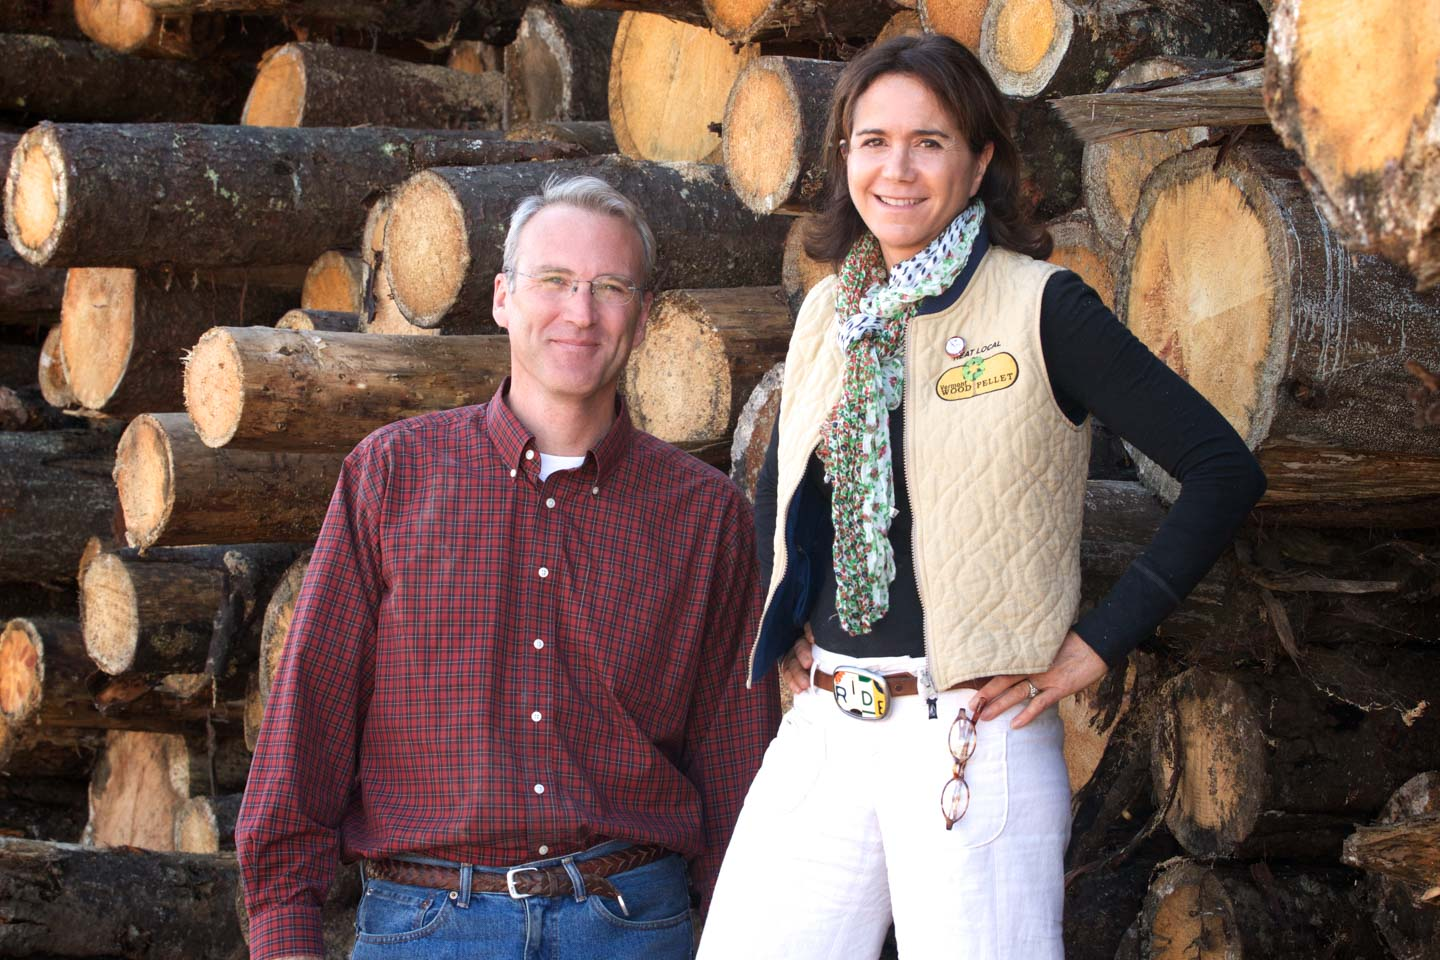 smiling couple in front of logs